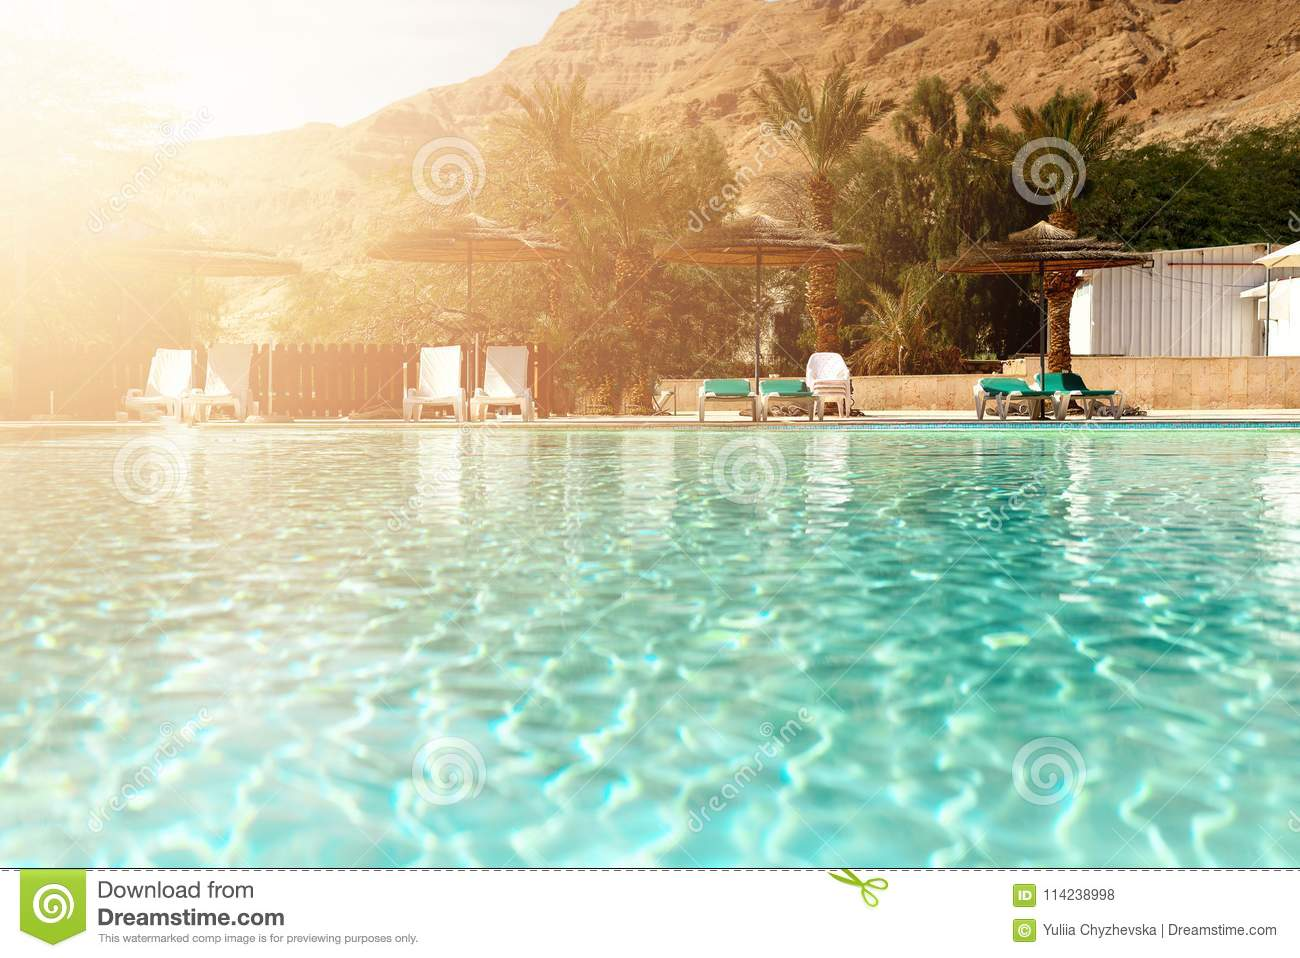 Outdoor Natural Gas Fire Pit Table, Summer Travel Vacation And Holiday Concept Lounge Chairs Near Swimming Pool Against Judean Desert Turquoise Pool Stock Photo Image Of Green Outdoors 114238998